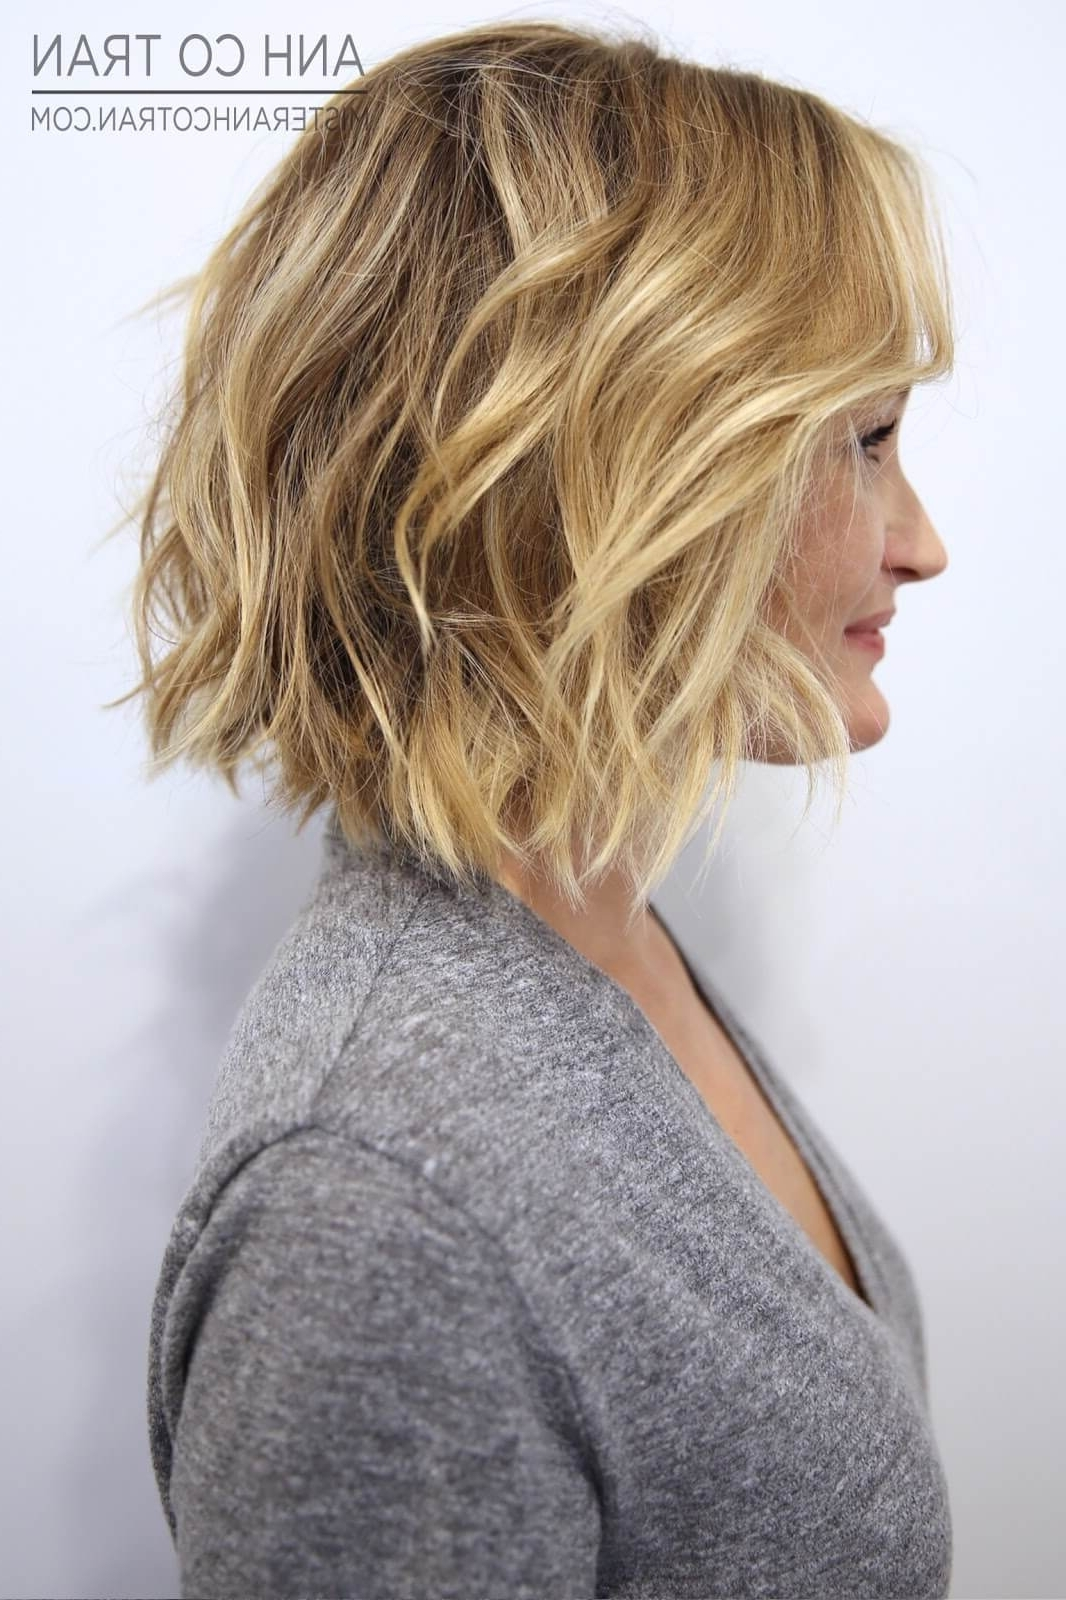 50 Ways To Wear Short Hair With Bangs For A Fresh New Look Pertaining To Most Up To Date Cute Blonde Bob With Short Bangs (View 17 of 20)